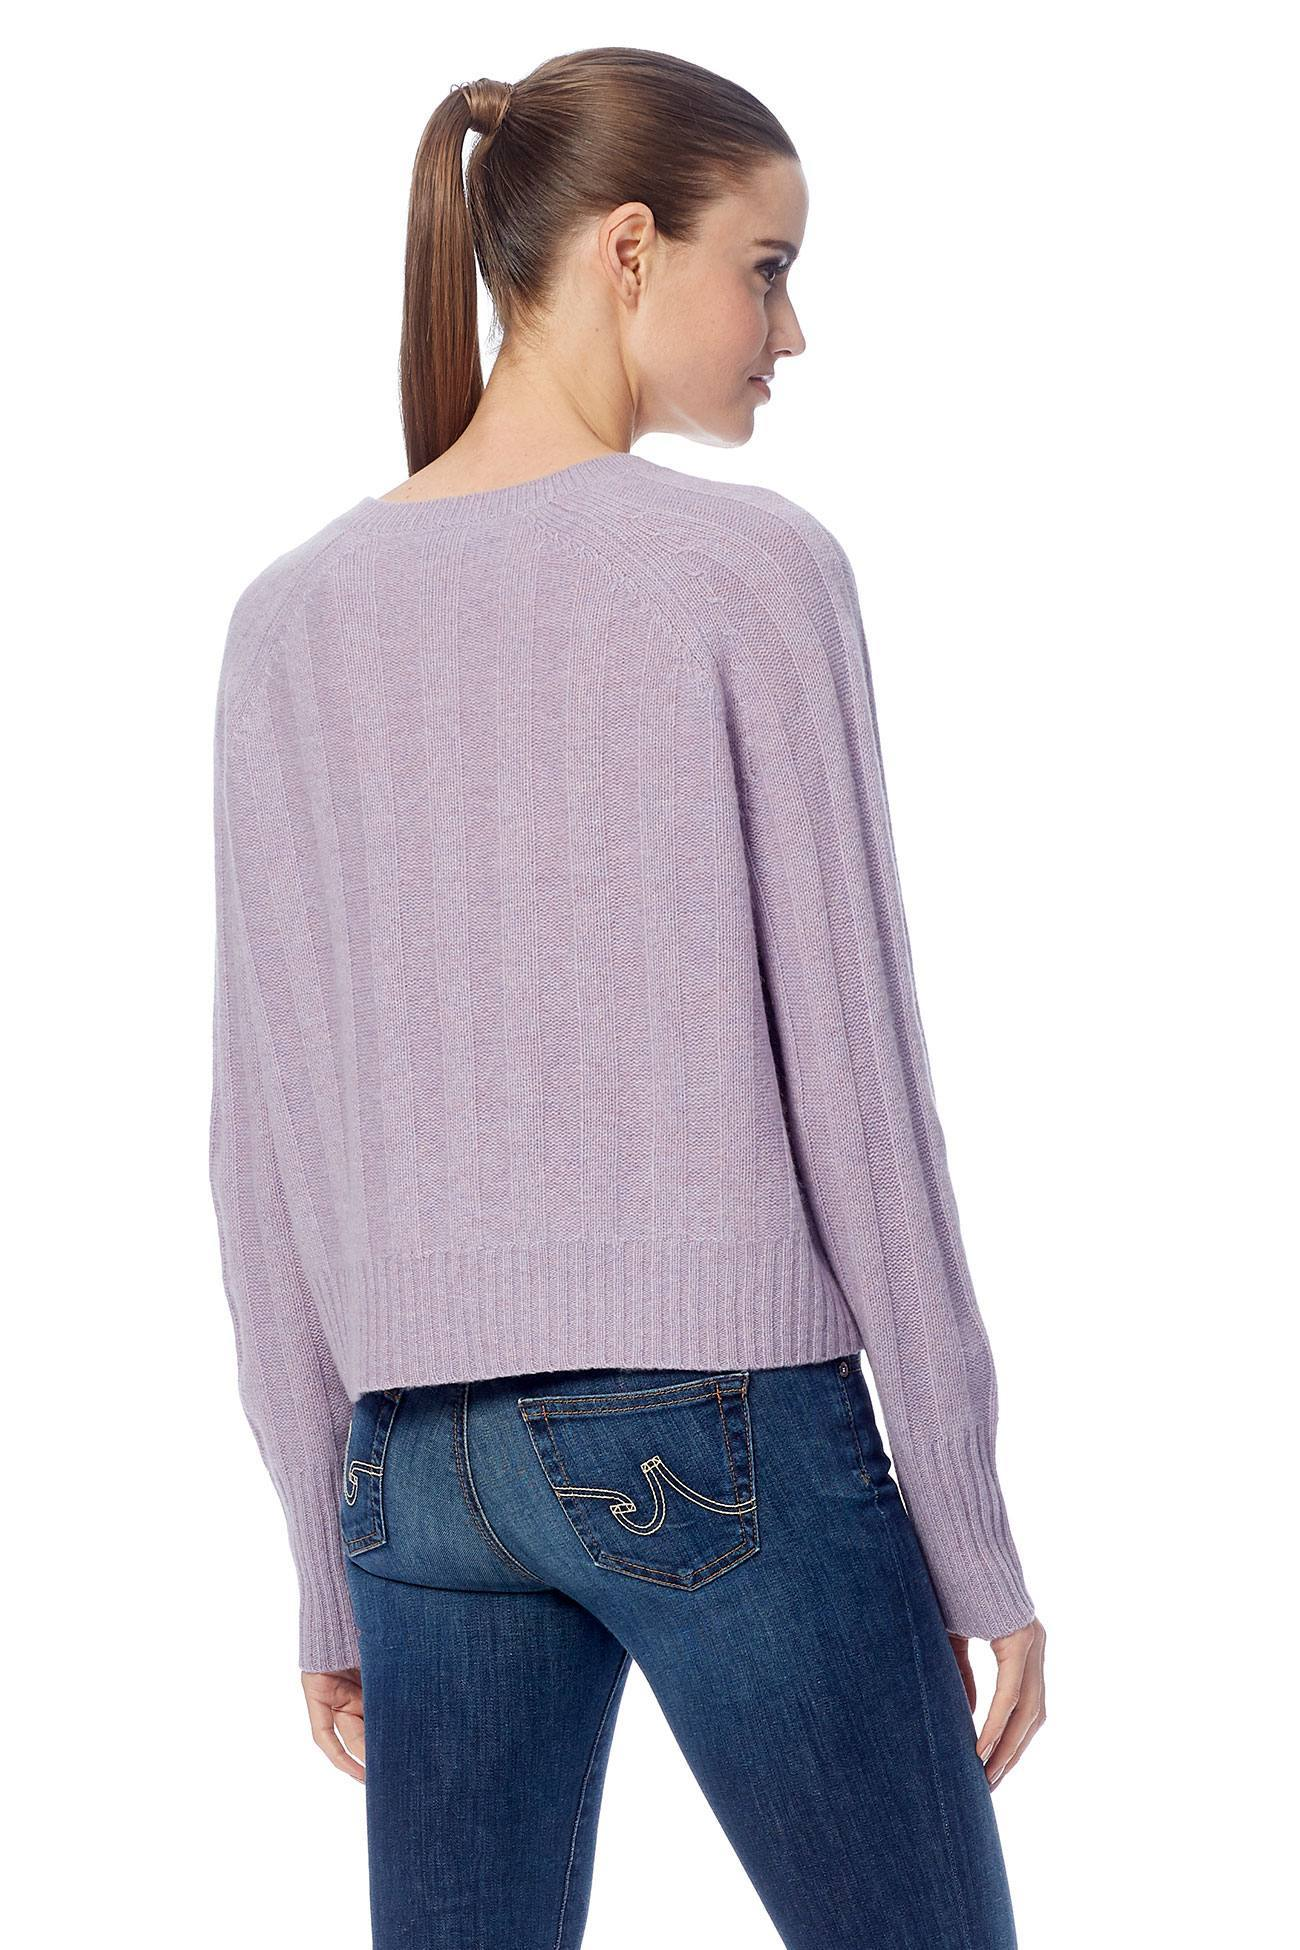 Londyn Wide Ribbed V-Neck Sweater - Wisteria